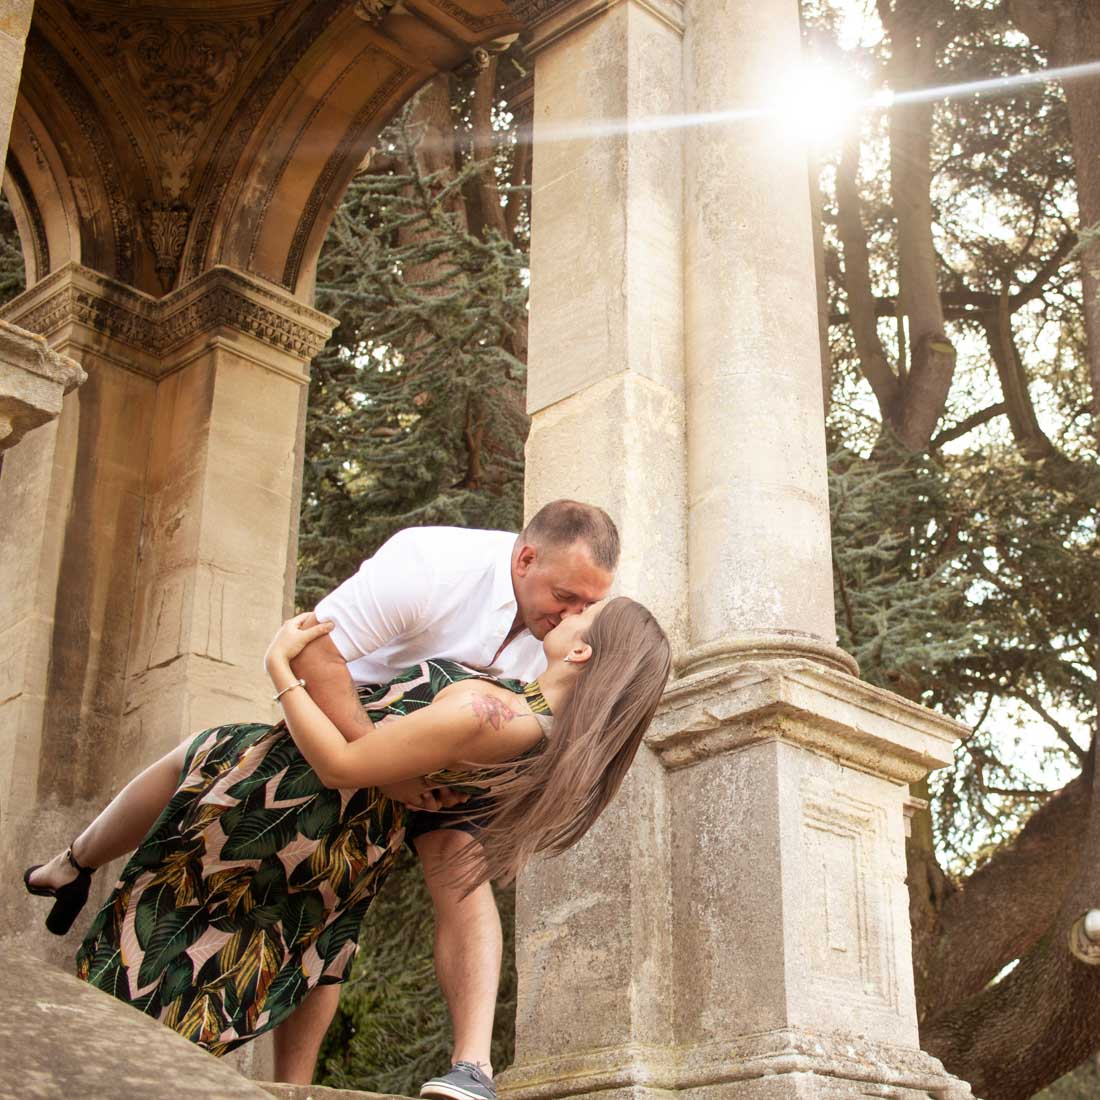 Romantic couple photoshoot in Witley Court and Gardens, Worcestershire. Passionate kiss of newly engaged couple. Engagement and wedding photography in West Midlands, U.K.